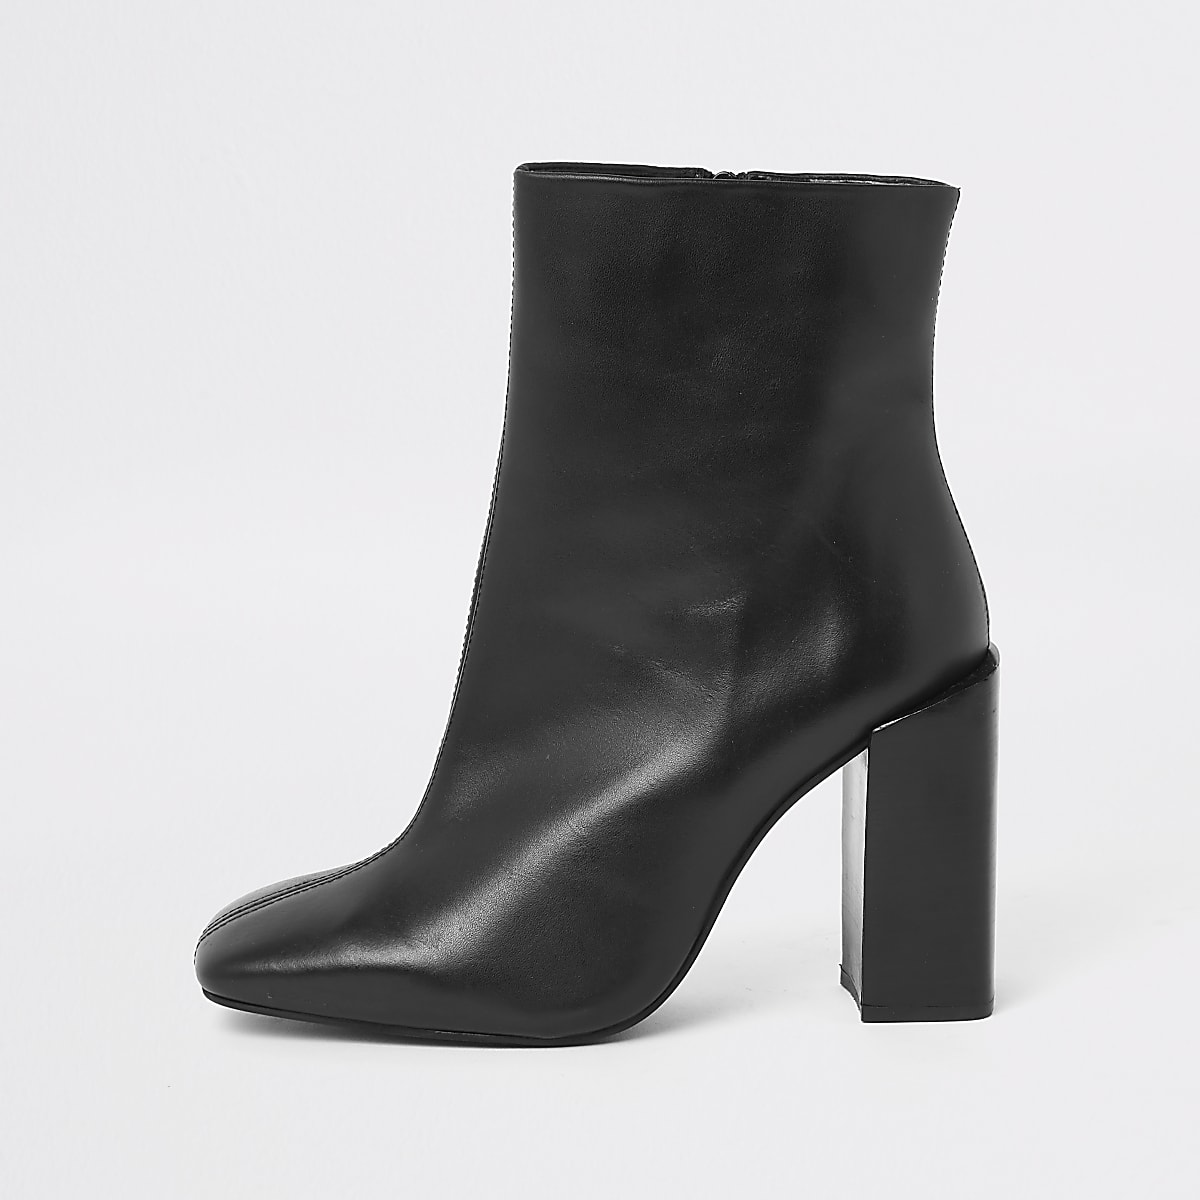 Black leather square toe block heel boots